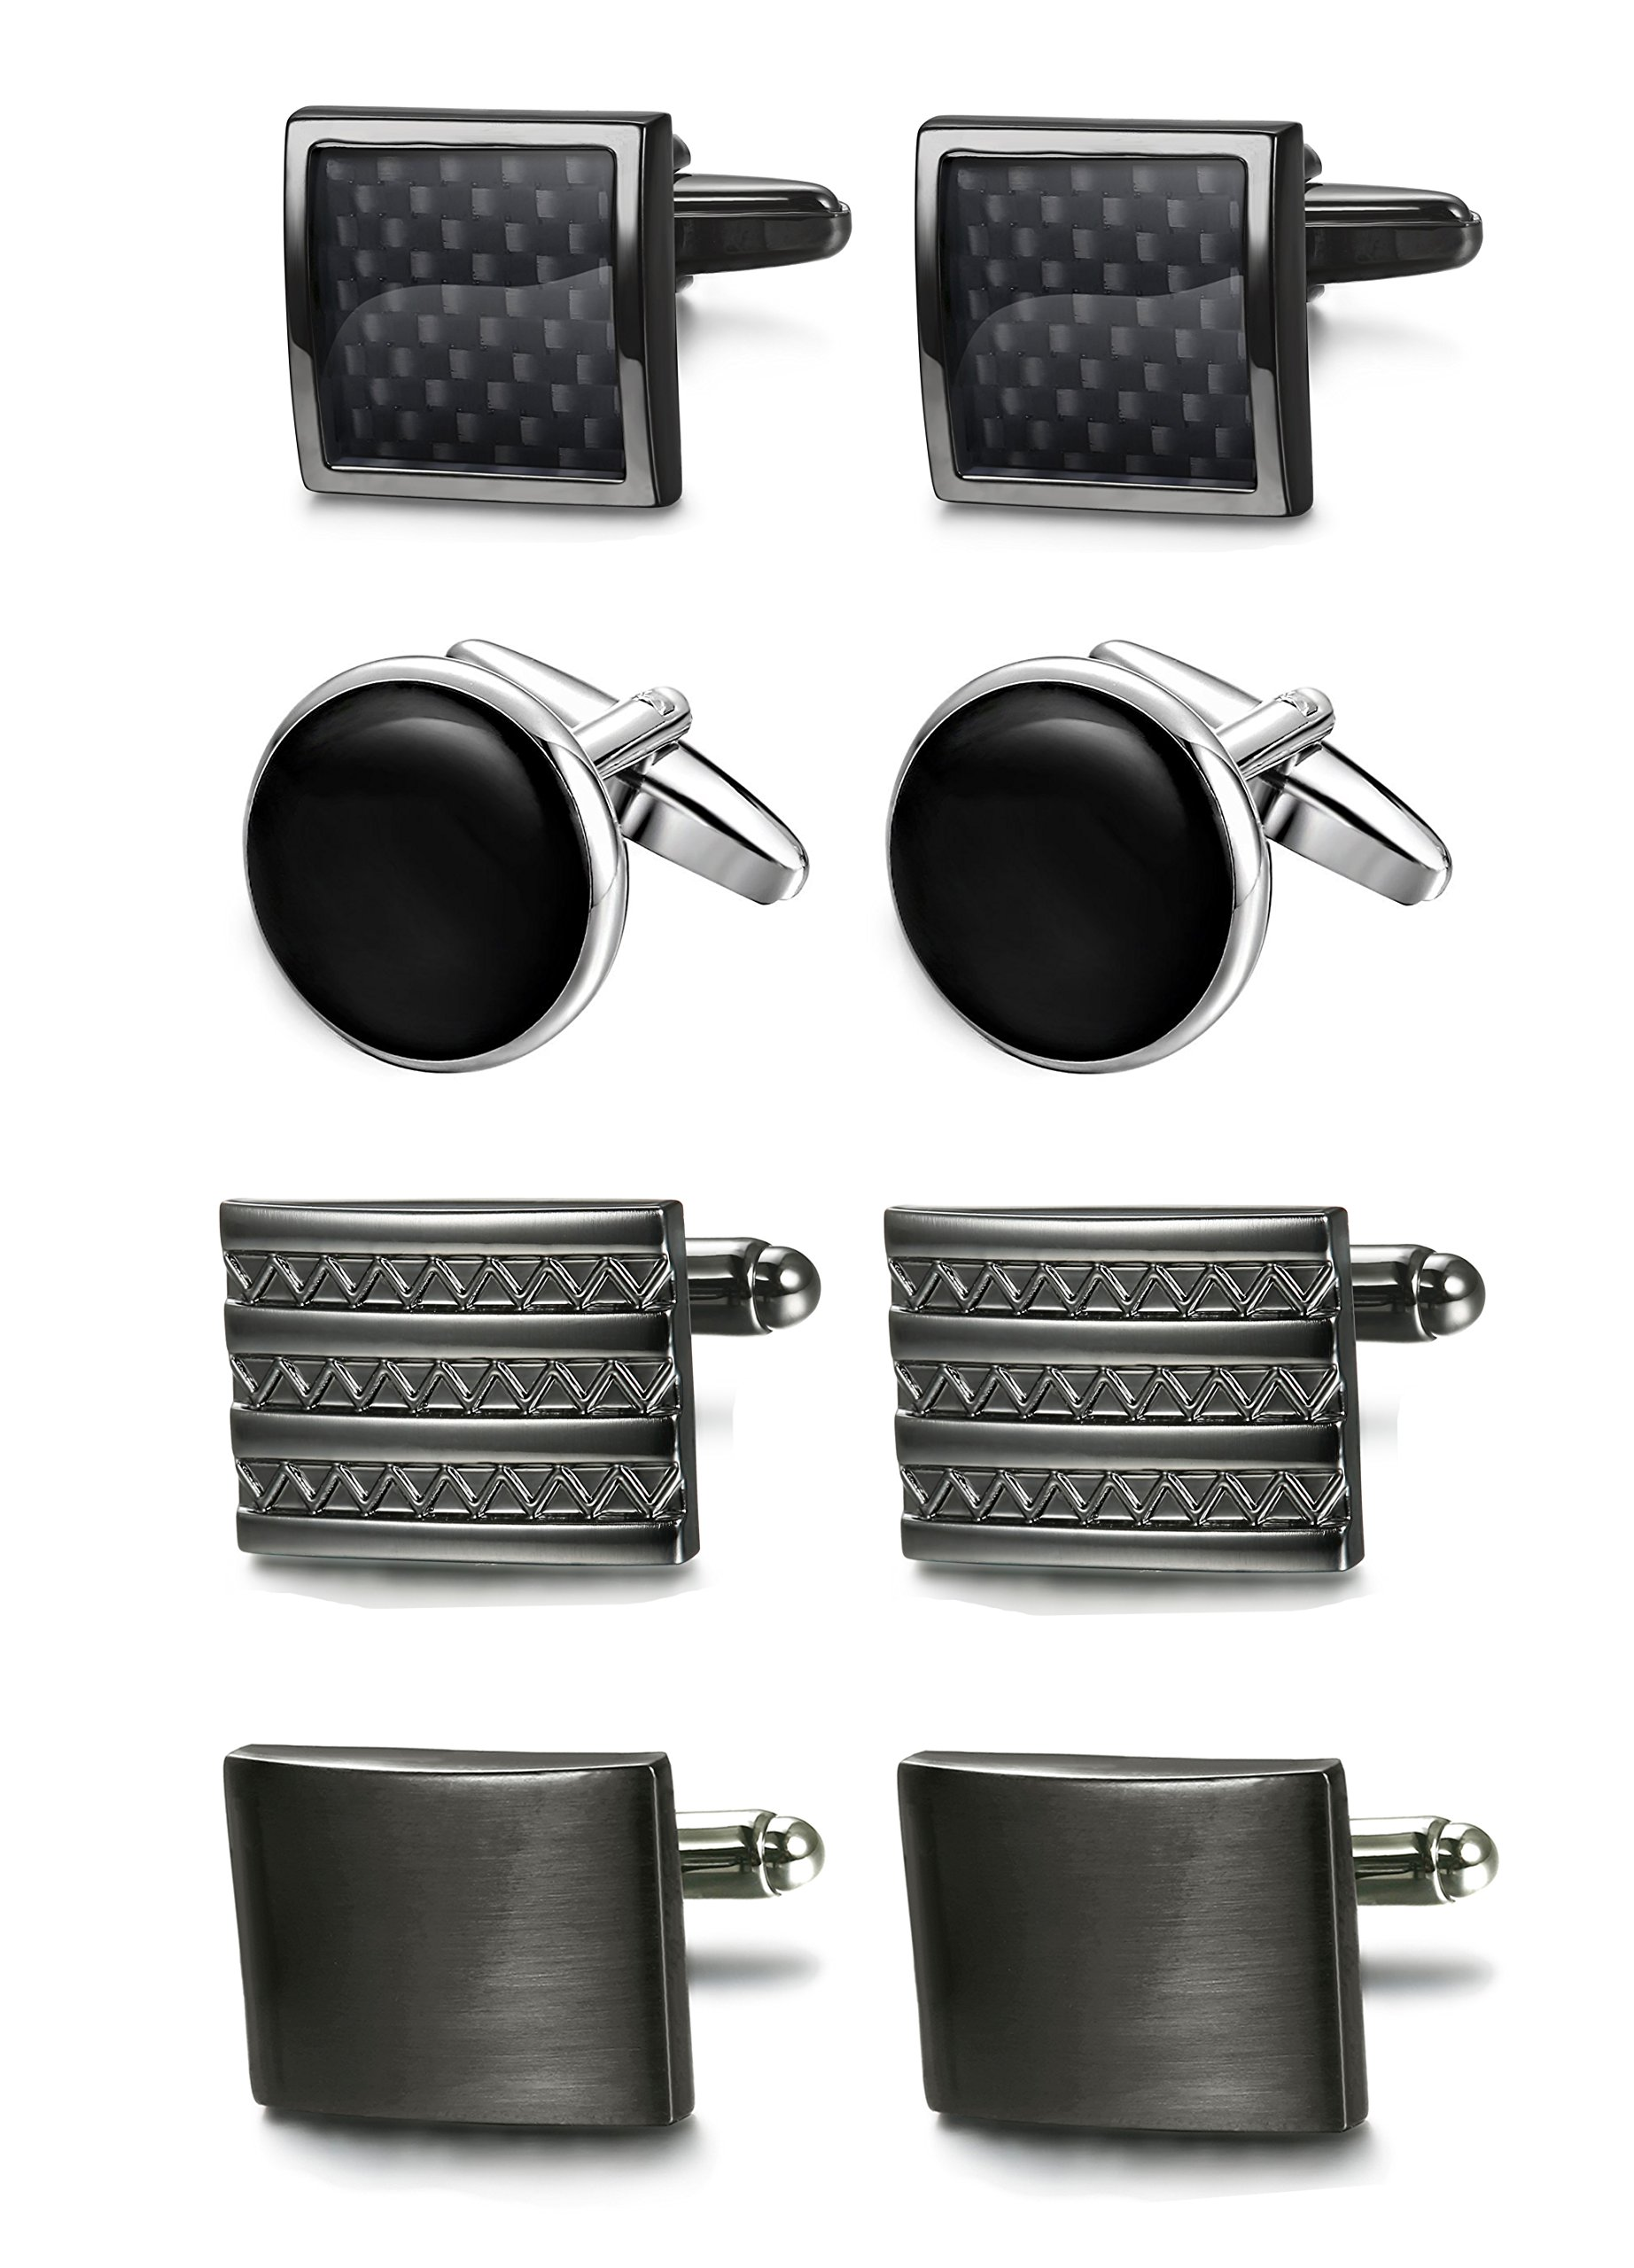 FIBO STEEL Class Cufflinks for Men Black Unique Wedding Cufflink Set Mens Dad Birthday Gifts by FIBO STEEL (Image #1)